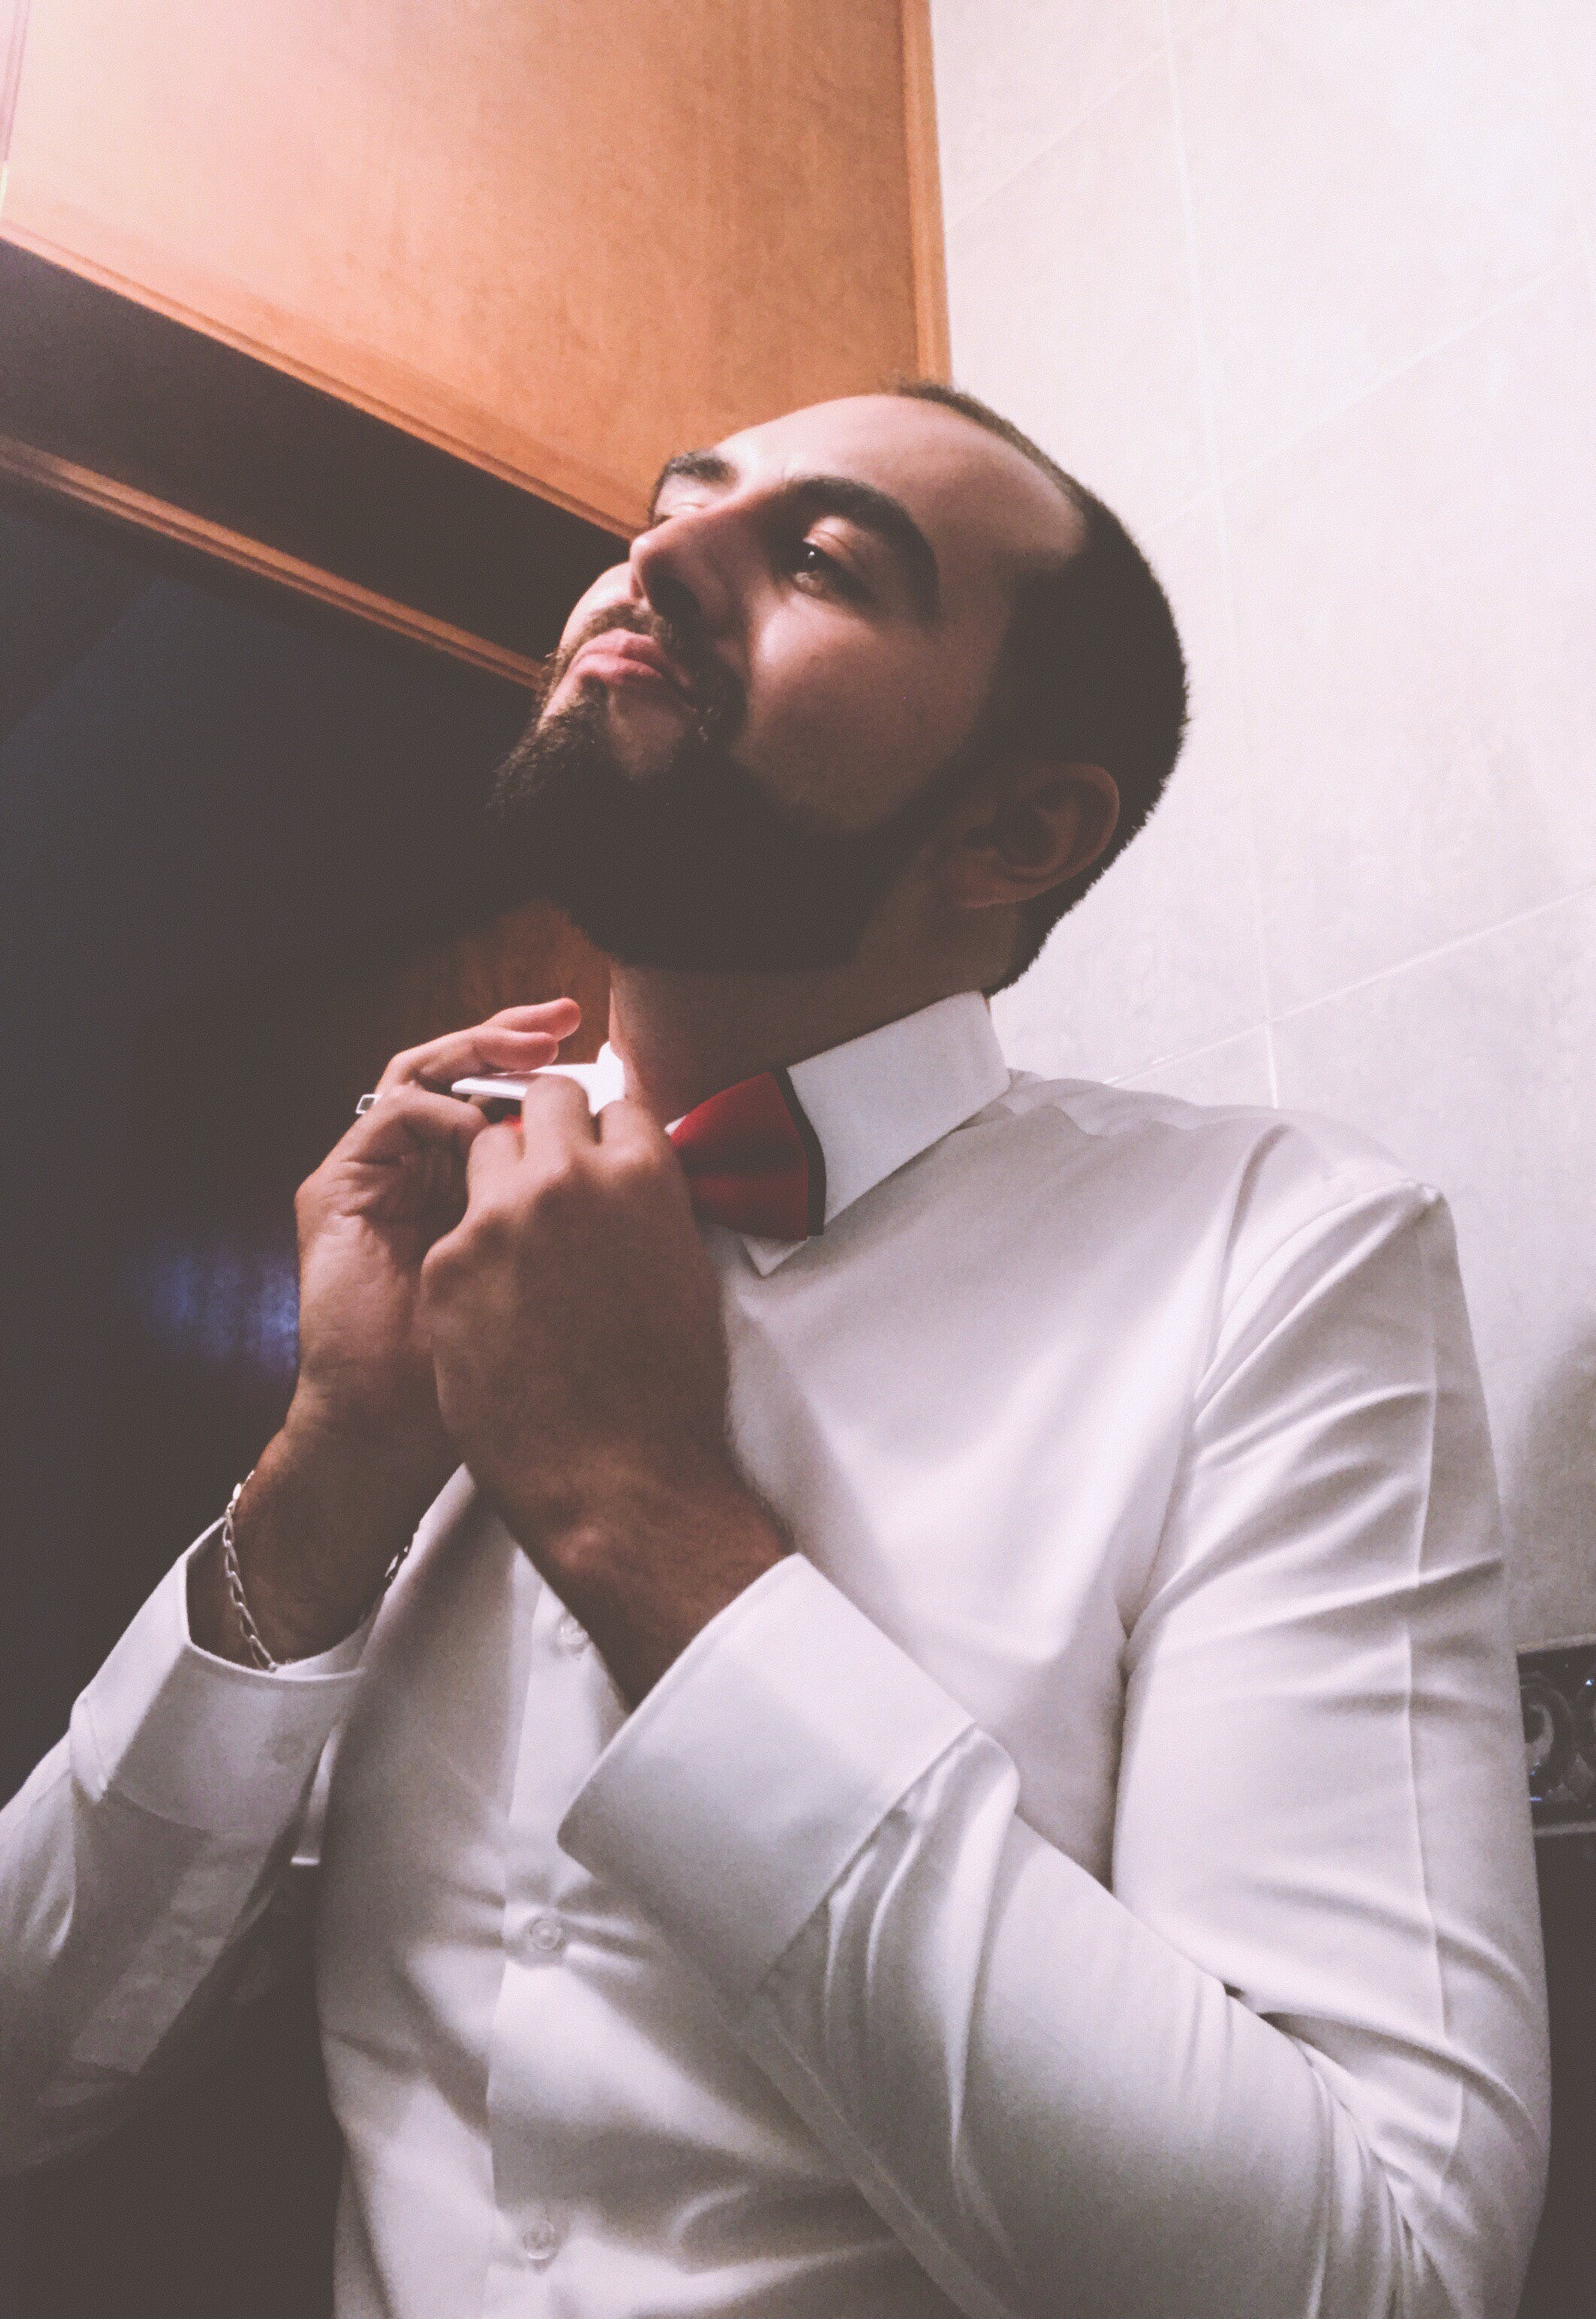 Man in White Dress Shirt Tying a Red Bow Tie